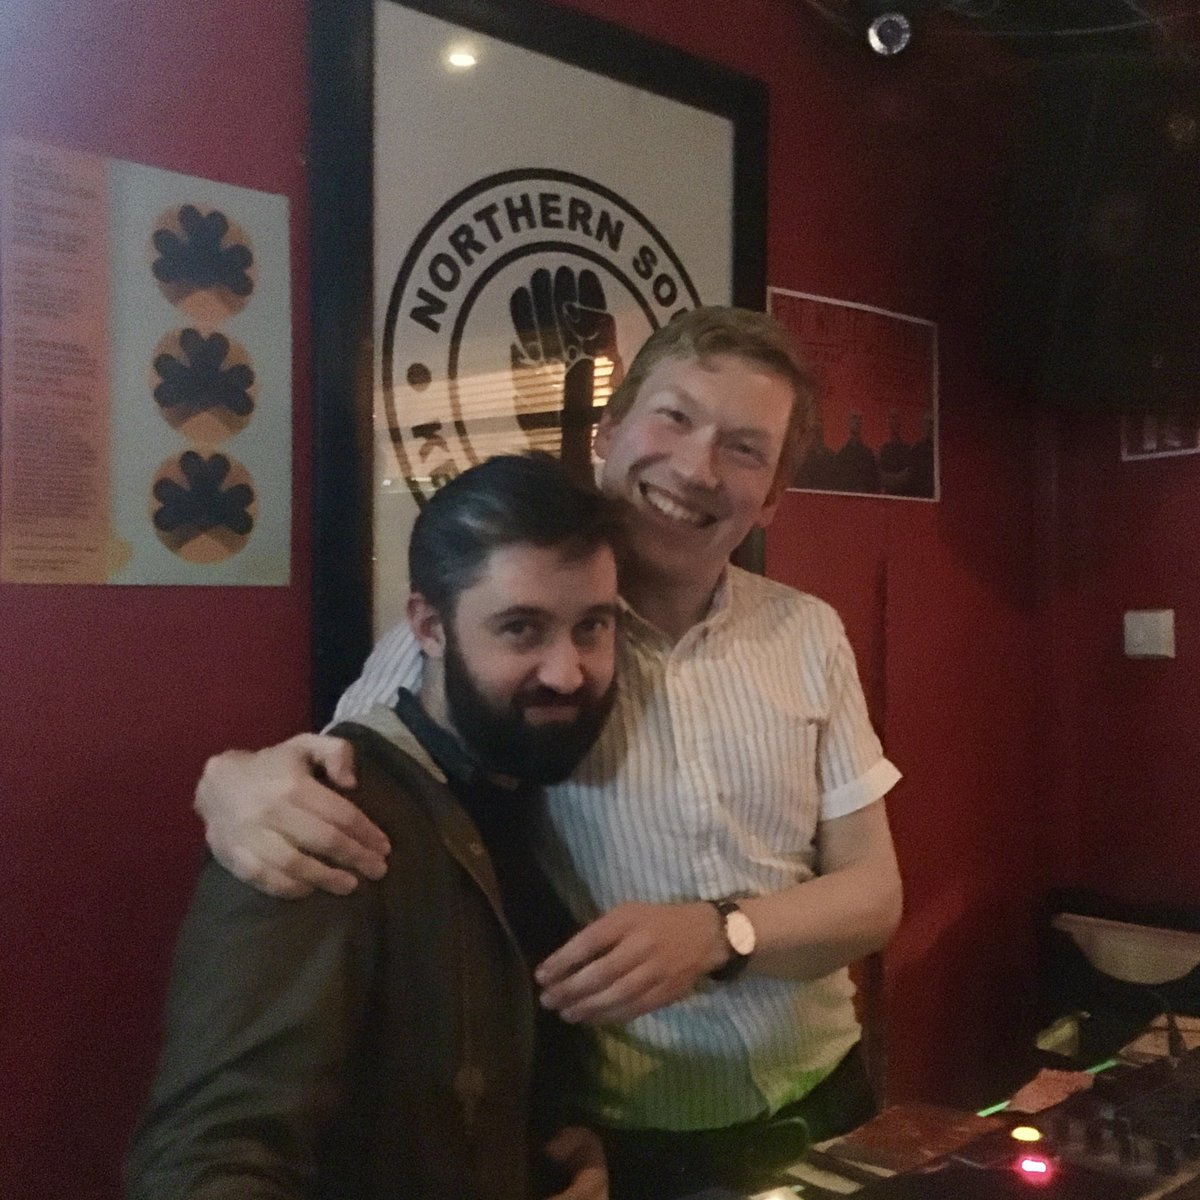 It's Thursday so here's a #tbt of happier days with my great friend Petey T (c/o Singles Bar) at the ever-missed @garagebardublin — we'll all be buzzin again soon ❤️ https://t.co/pQZiyY6DPy